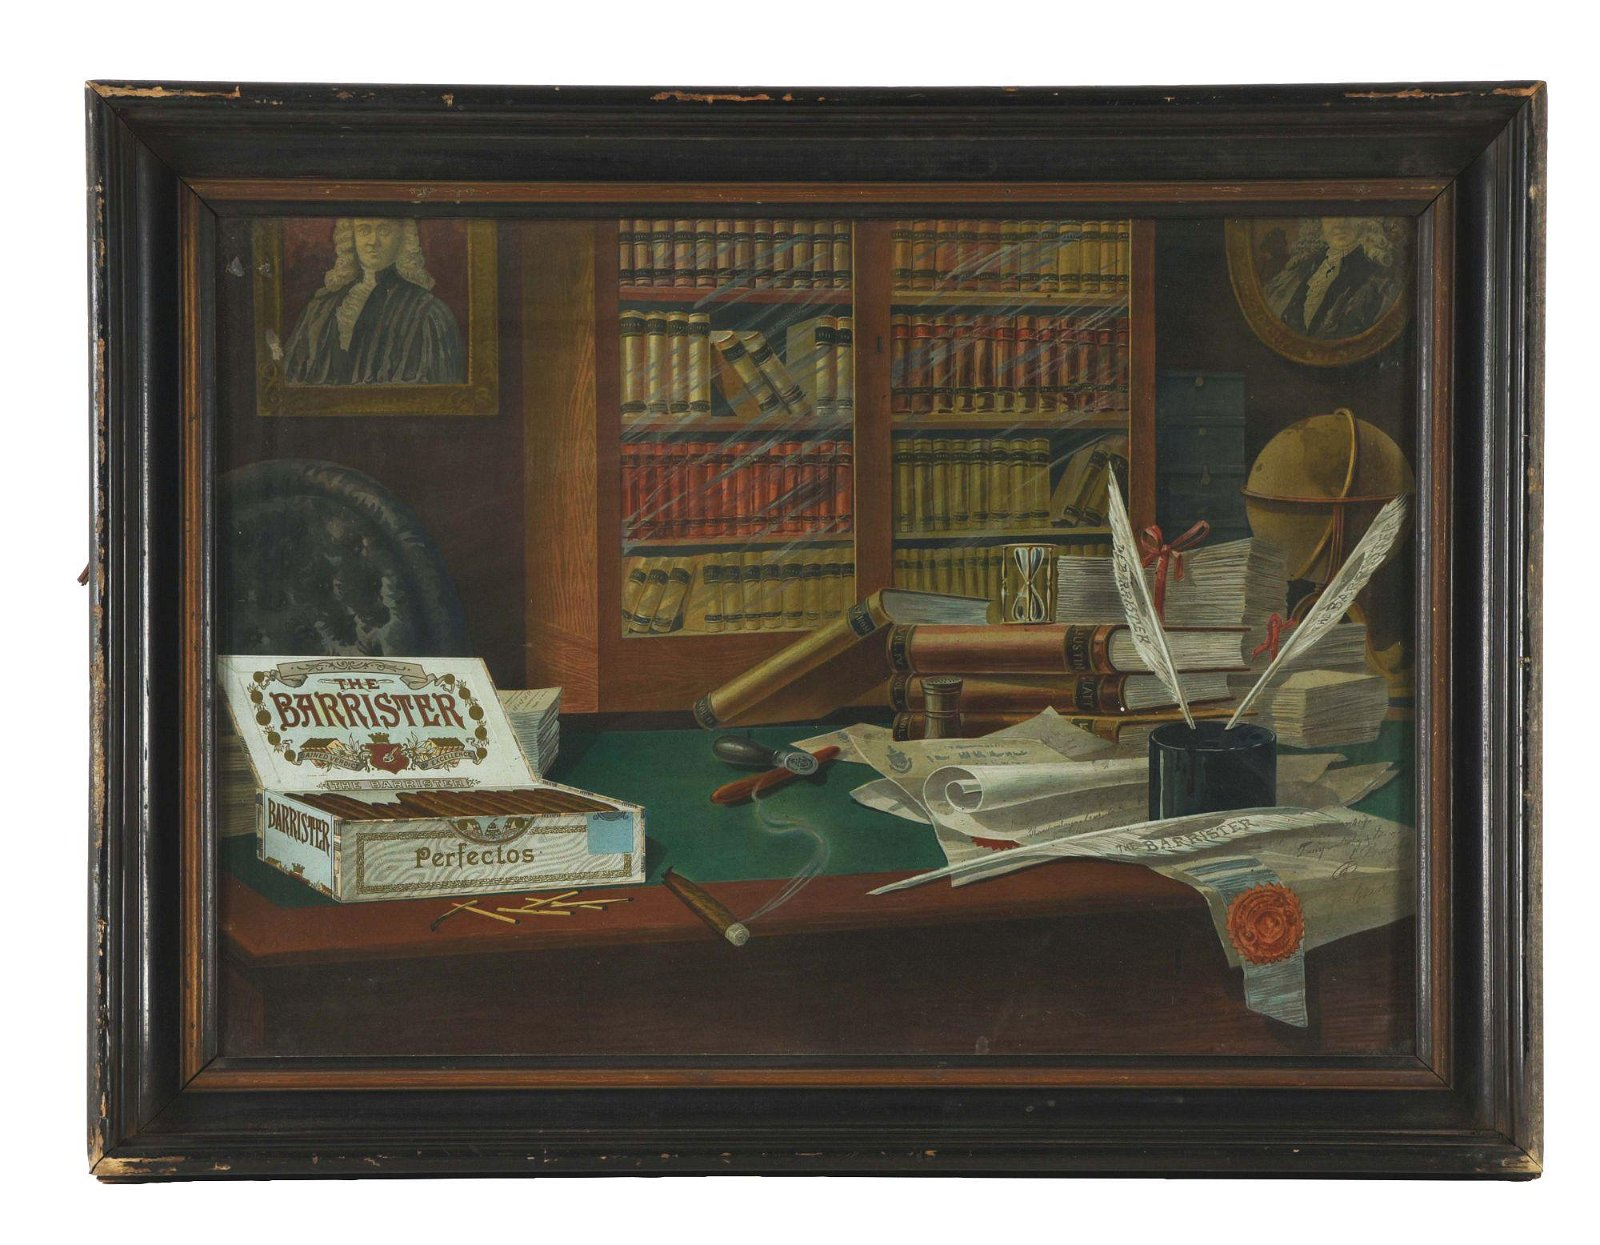 FRAMED TIN LITHOGRAPHED BARRISTER CIGARS SIGN.